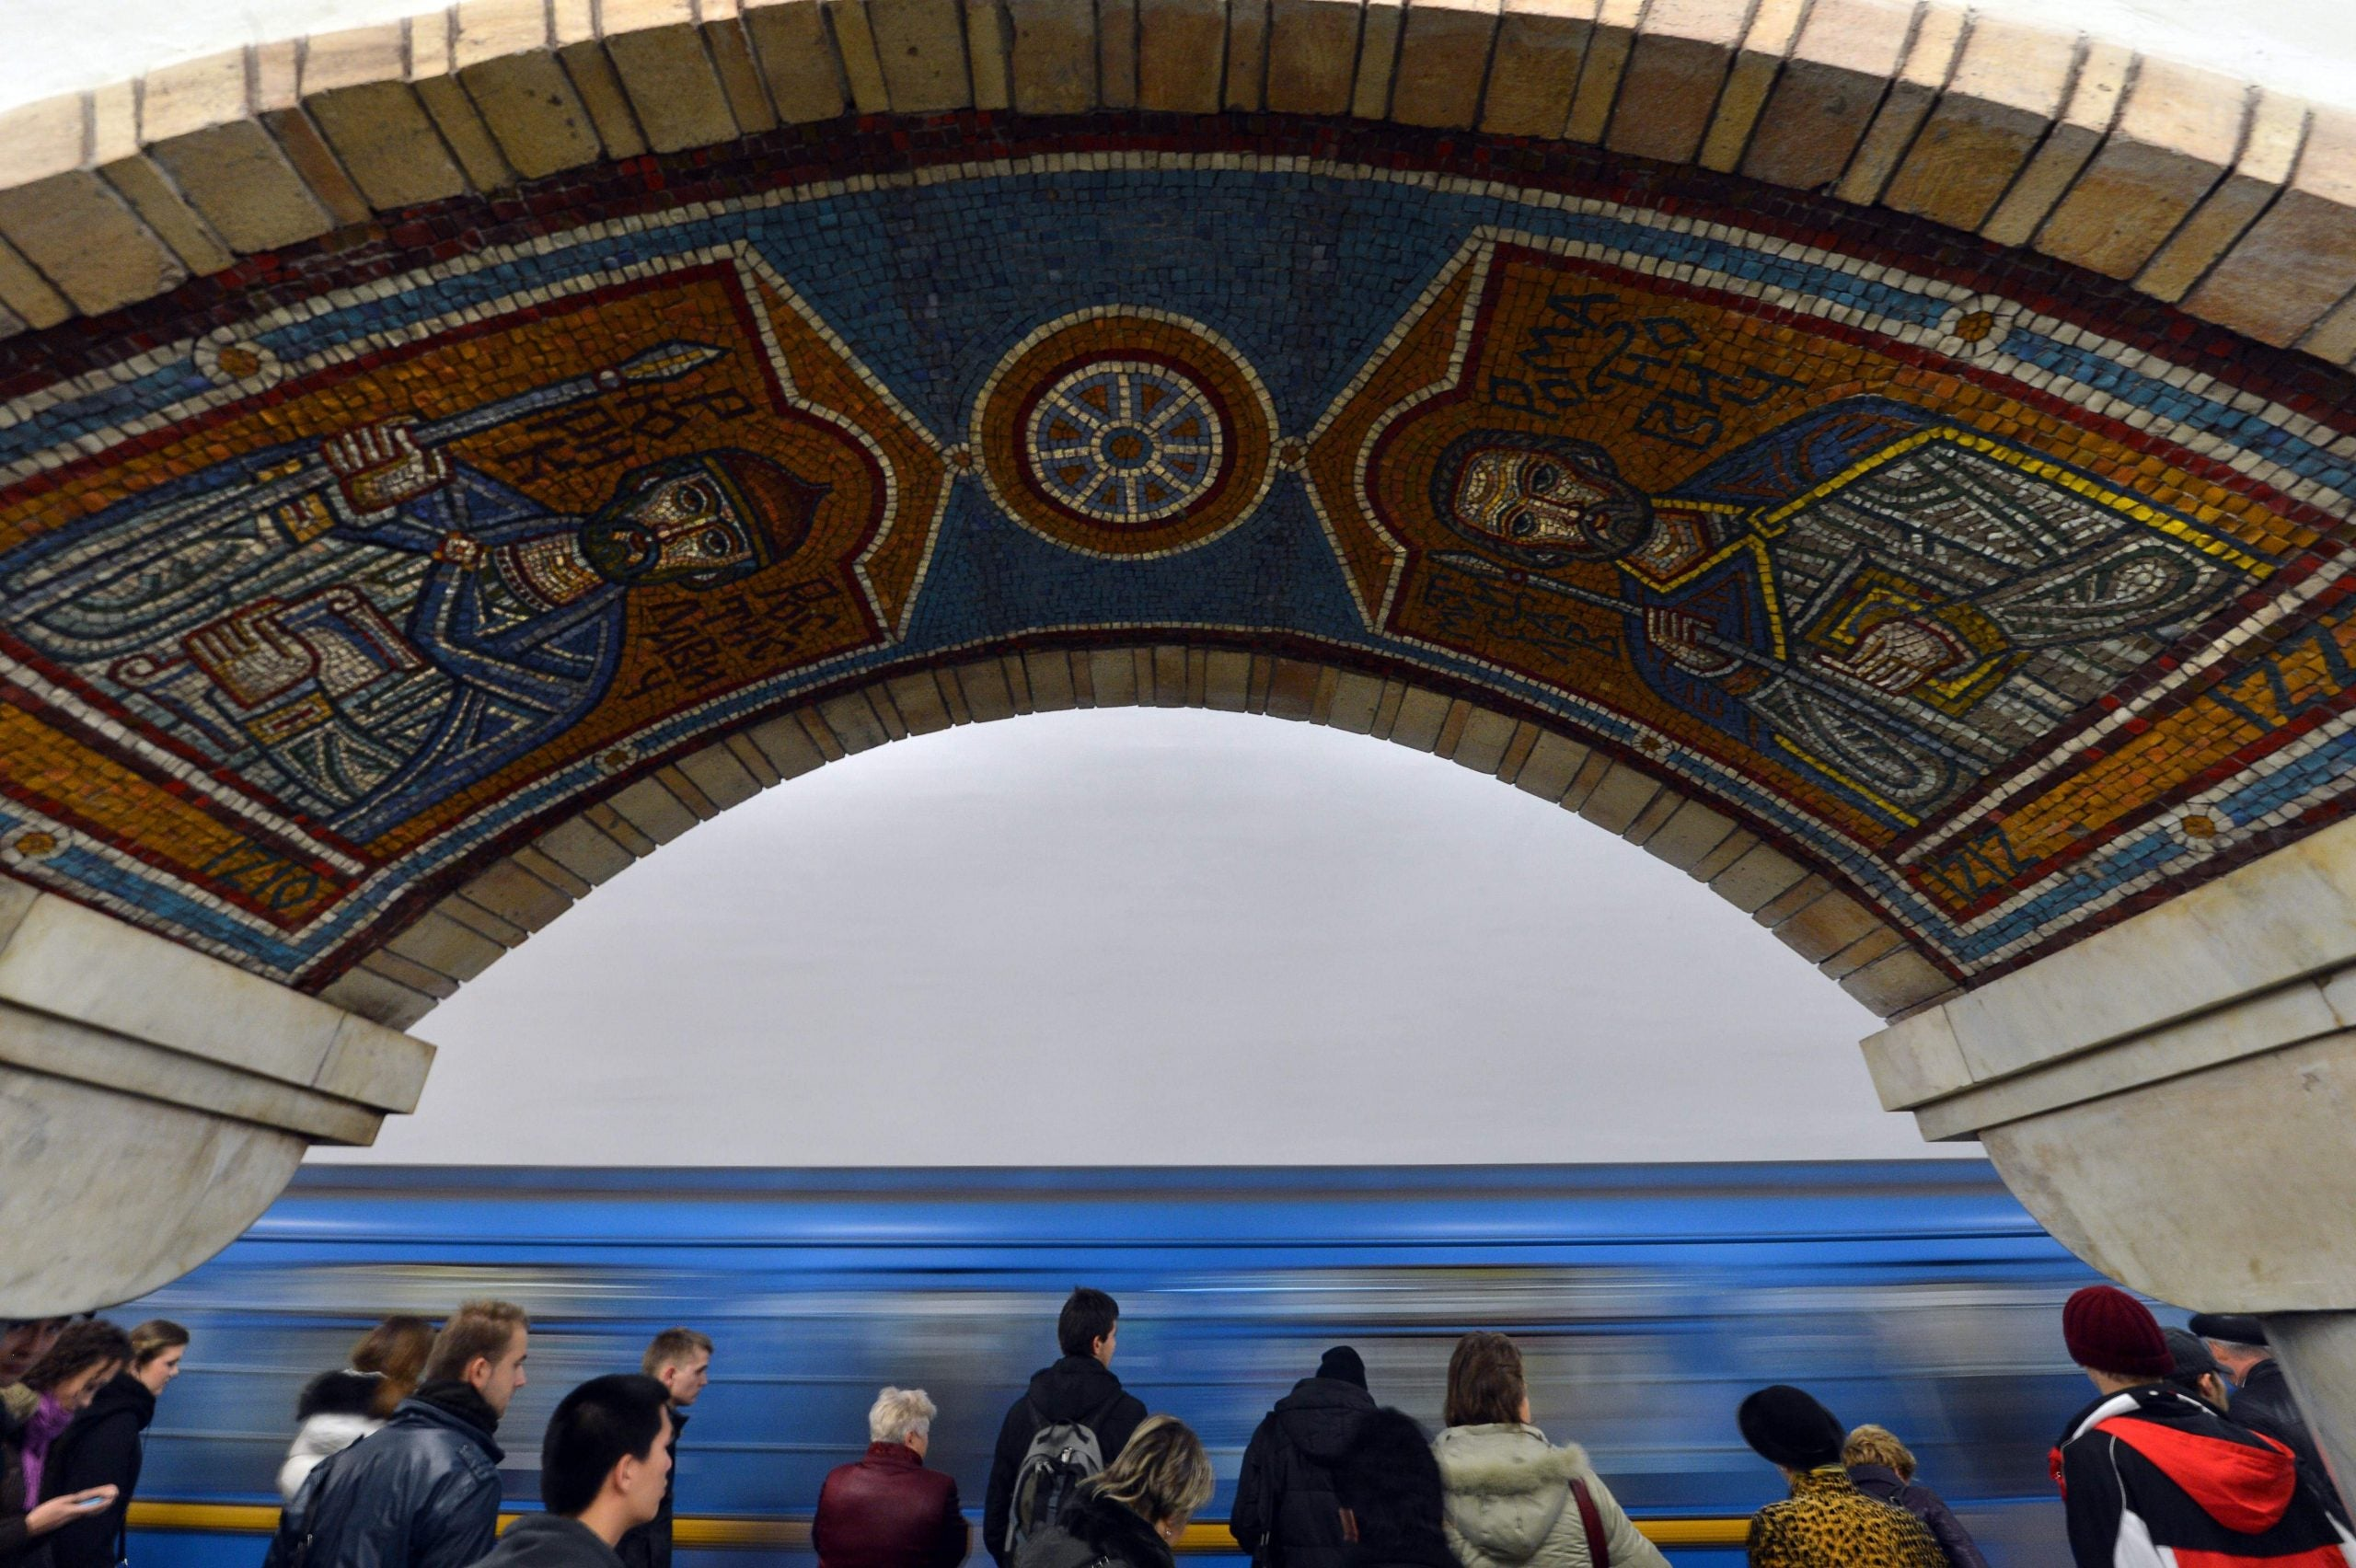 An escalator deep under Kyiv has the power to change the rider's existence